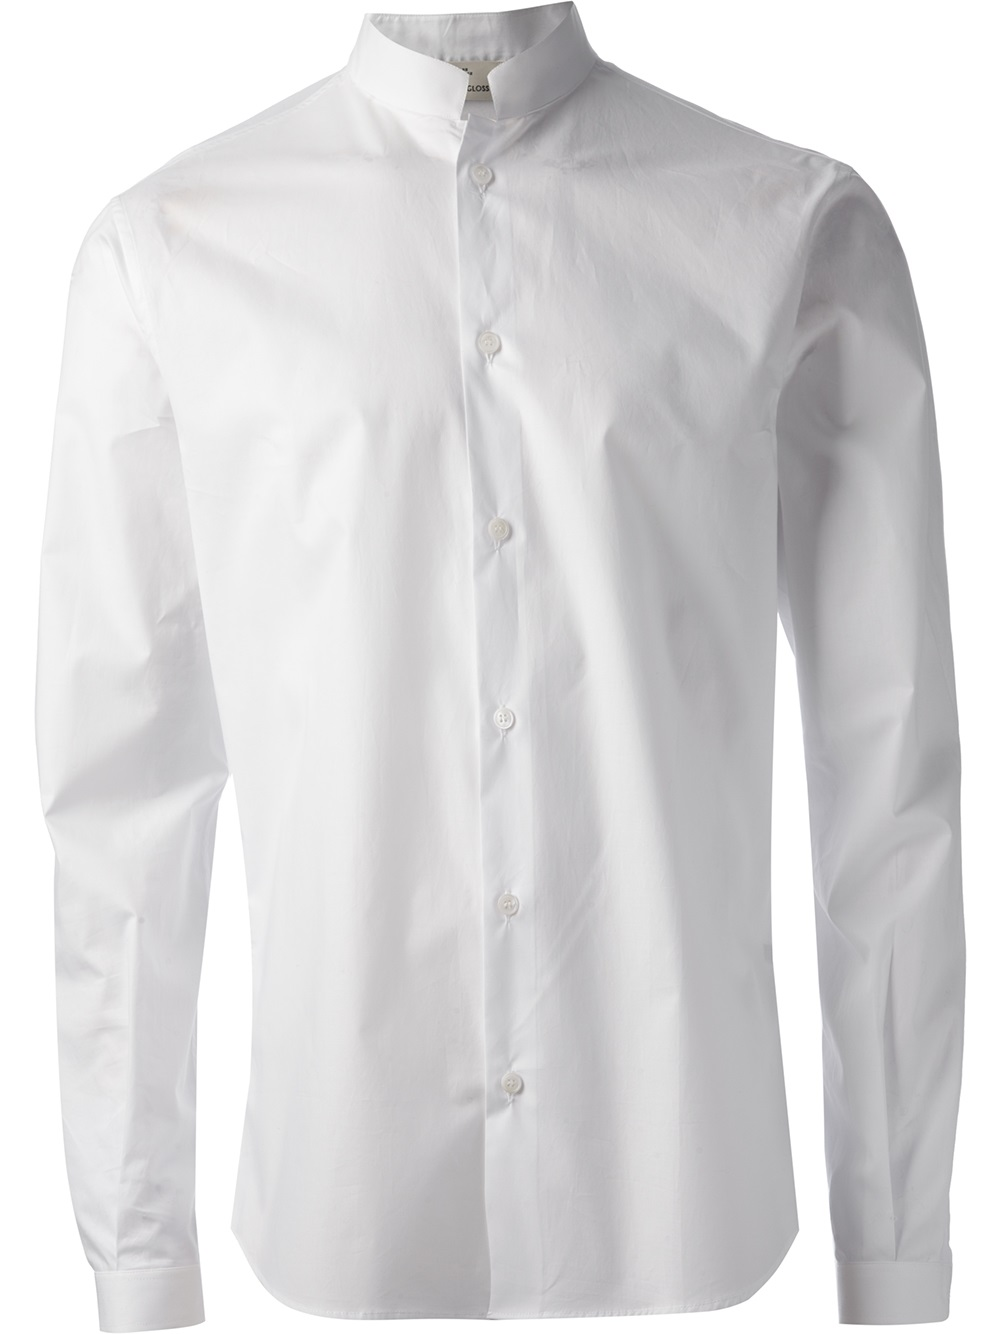 Button Up White Shirt | Is Shirt